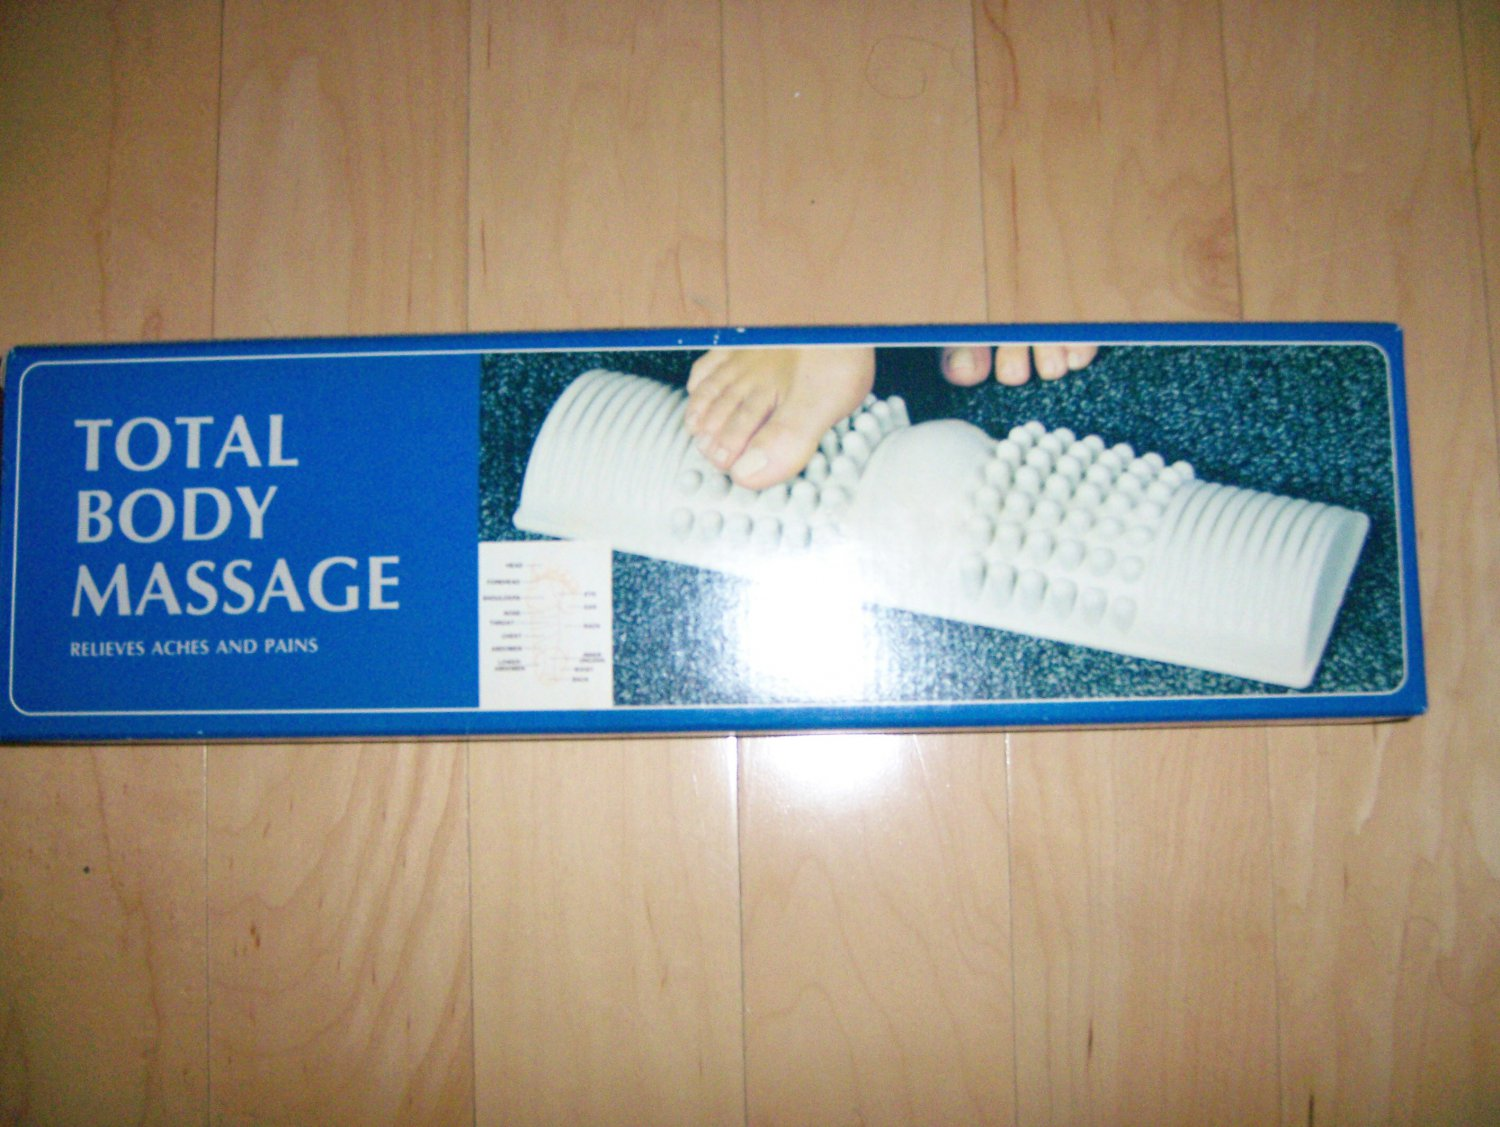 Foot/Body Massage With Map Where Helps Body BNK1189